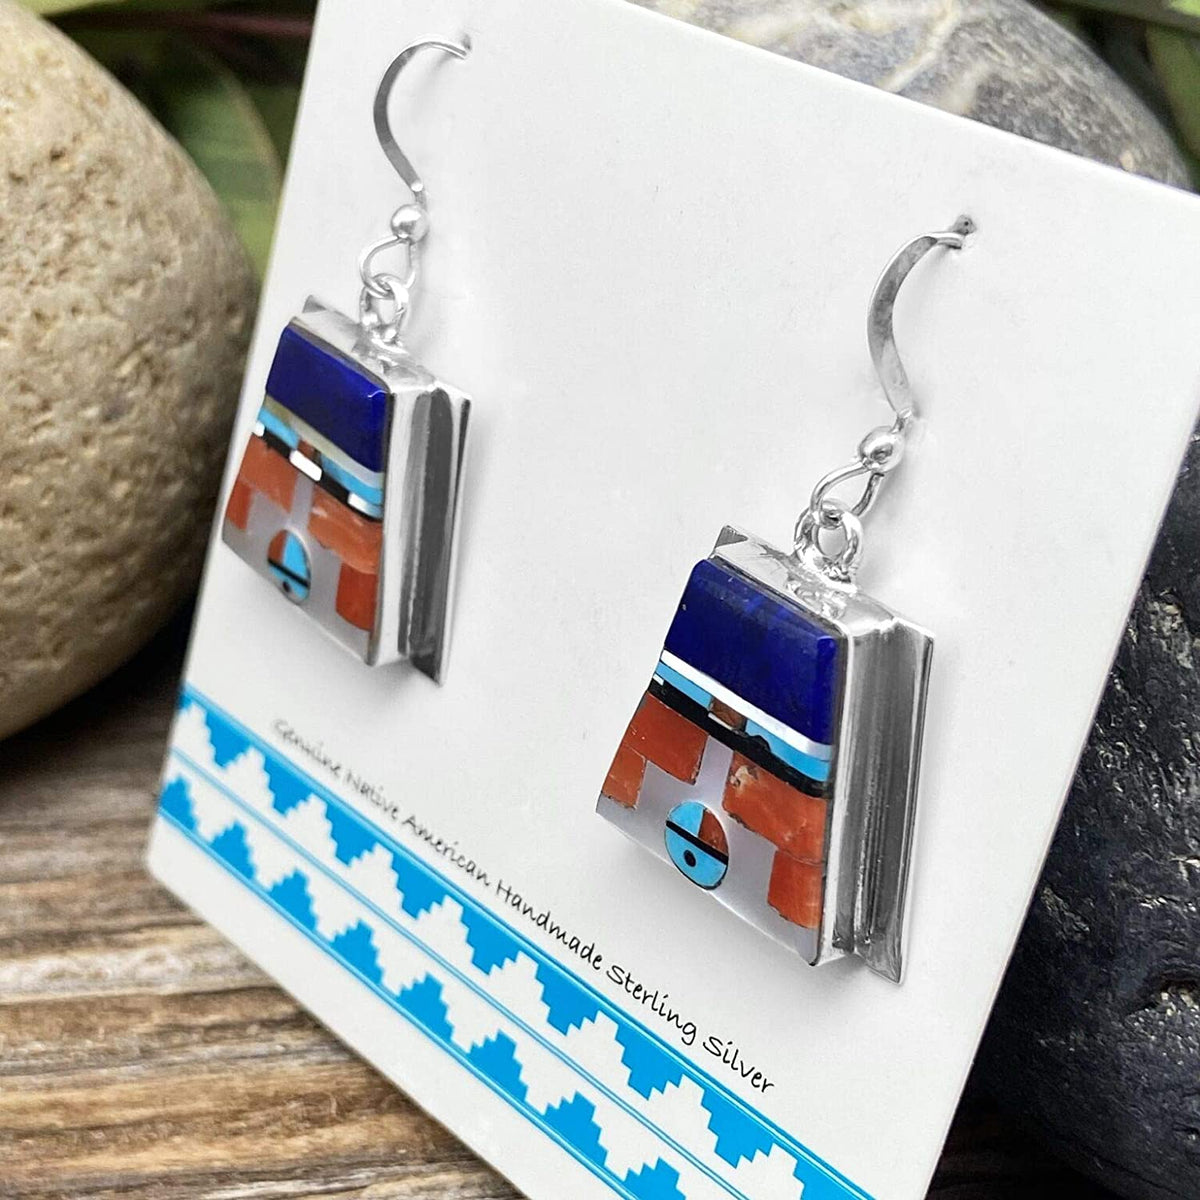 Genuine Stone Zuni Sunface Earrings, 925 Sterling Silver, Native American USA Handmade, Artisan Signed, Nickle Free, French Hook